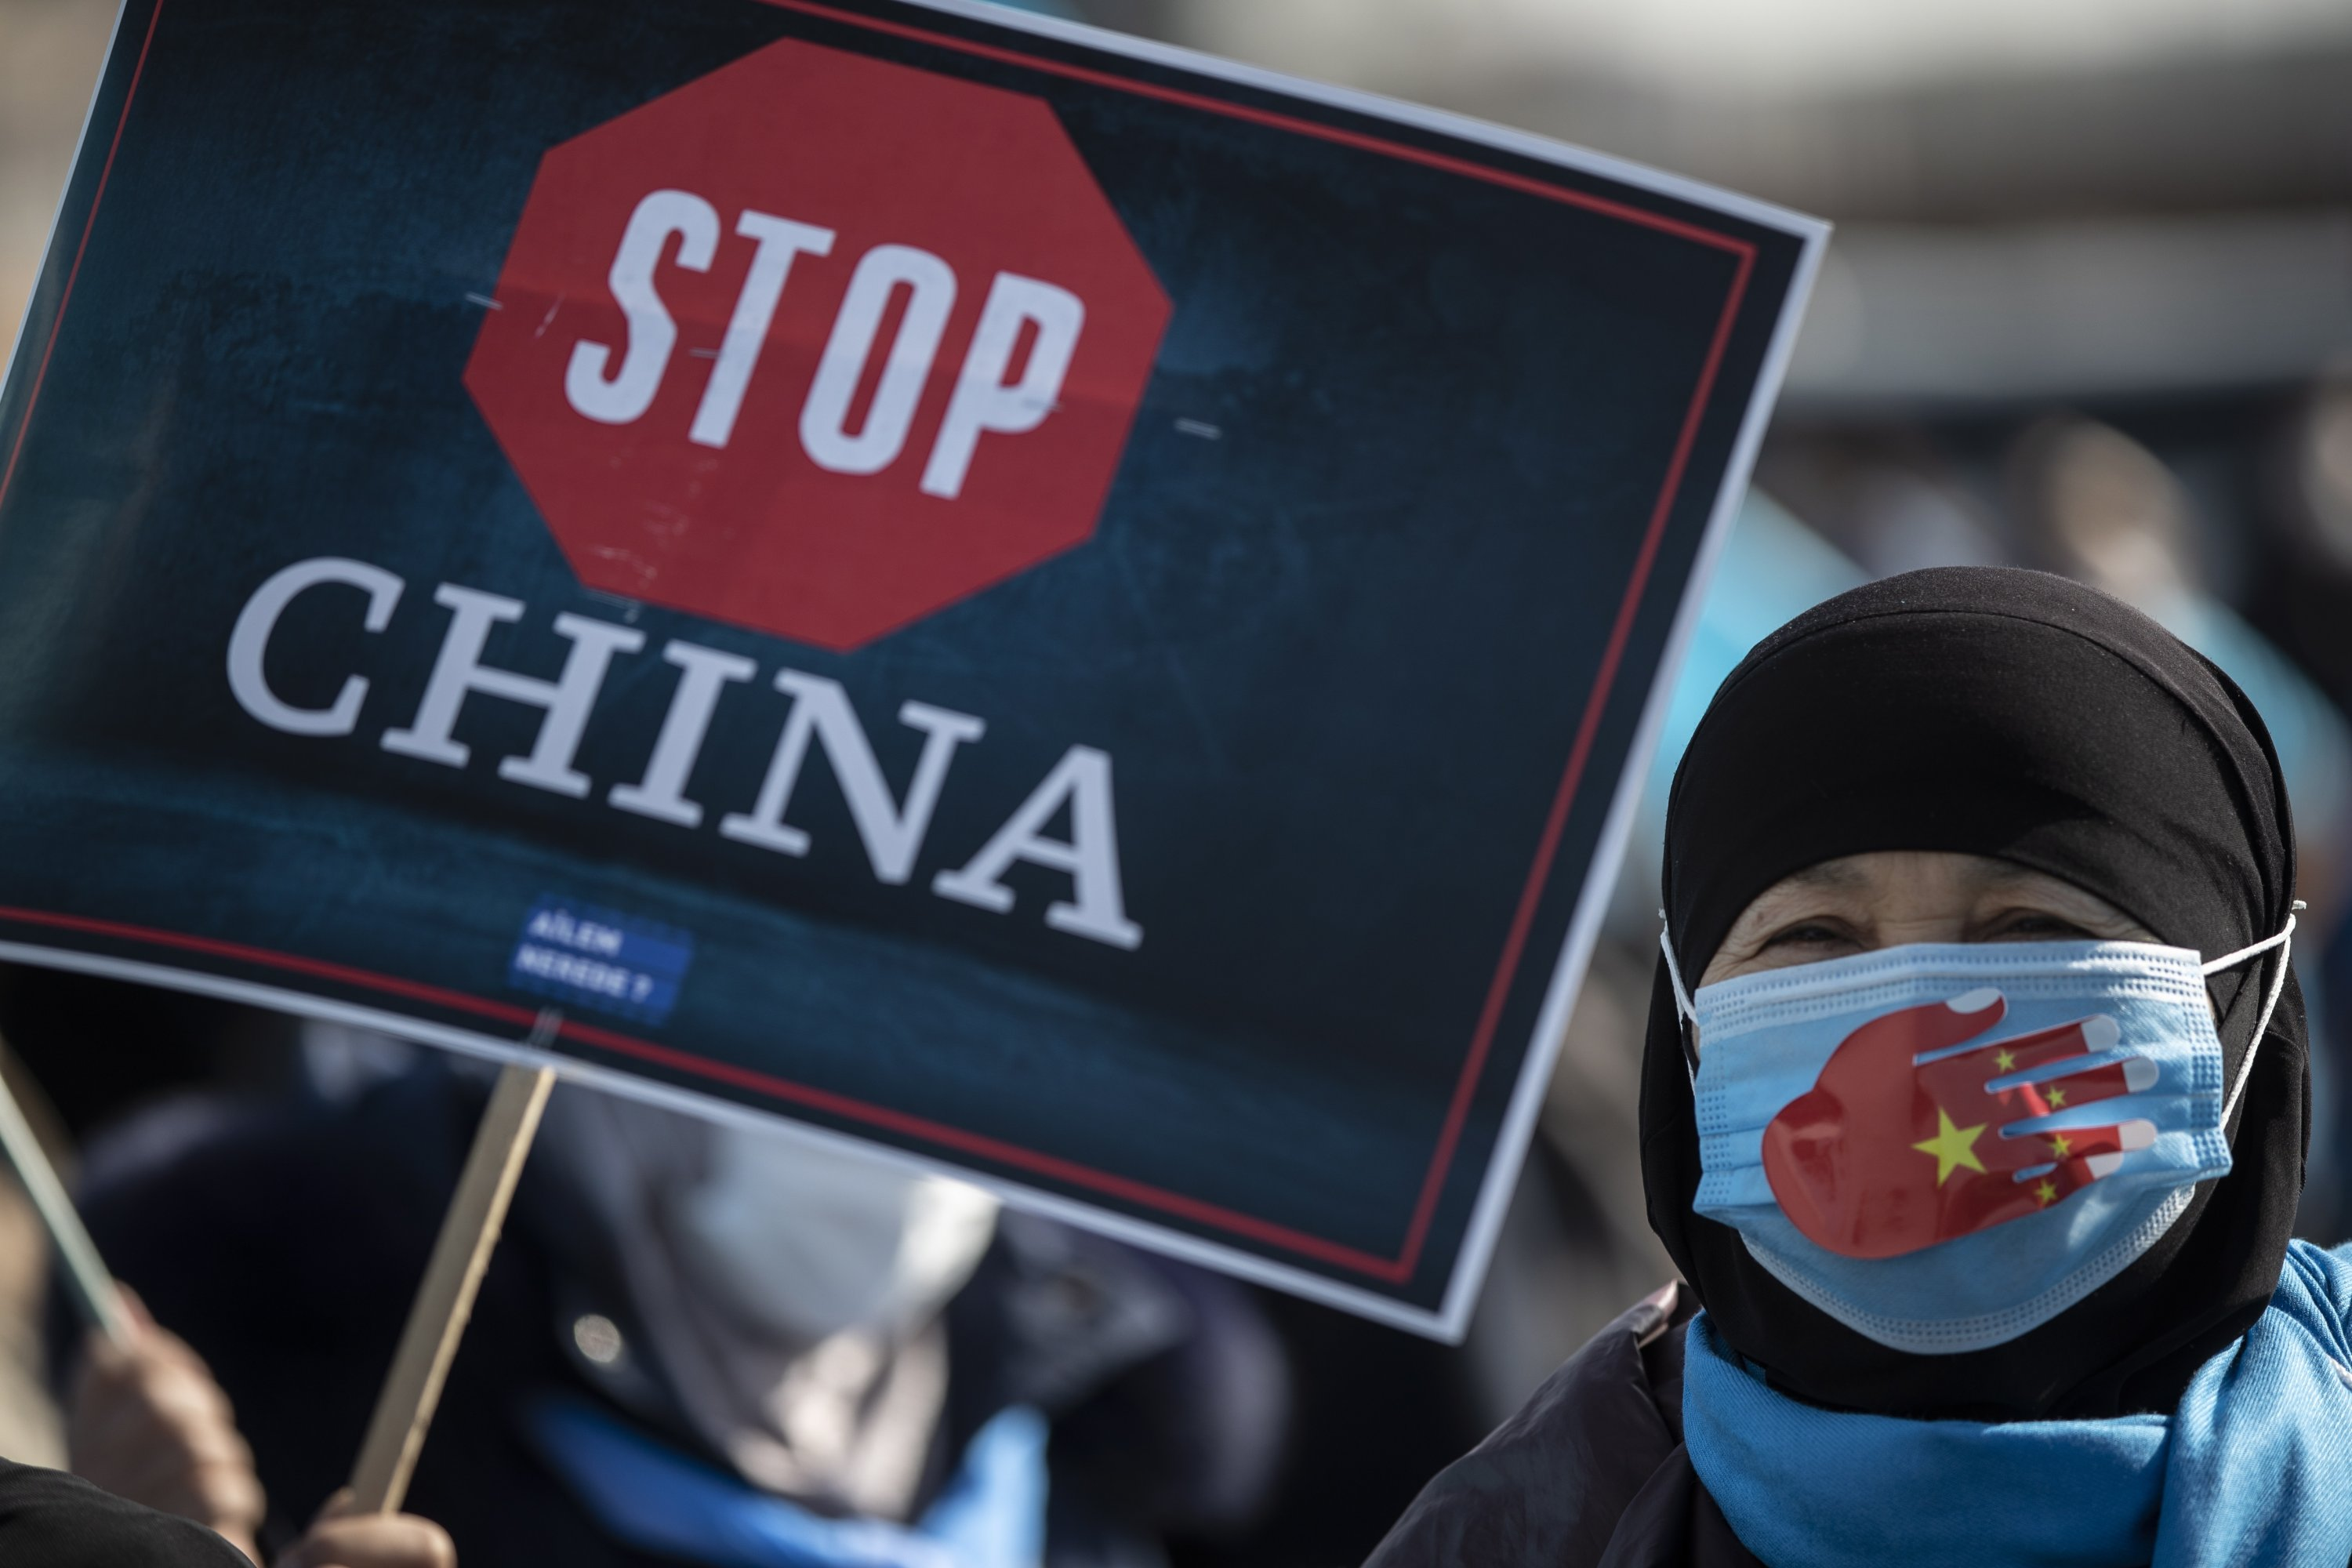 Uyghur protestors who have not heard from their families living in Xinjiang hold placards and the Uyghur flag during a protest against China, in Istanbul, Turkey, Feb. 26, 2021. (EPA Photo)